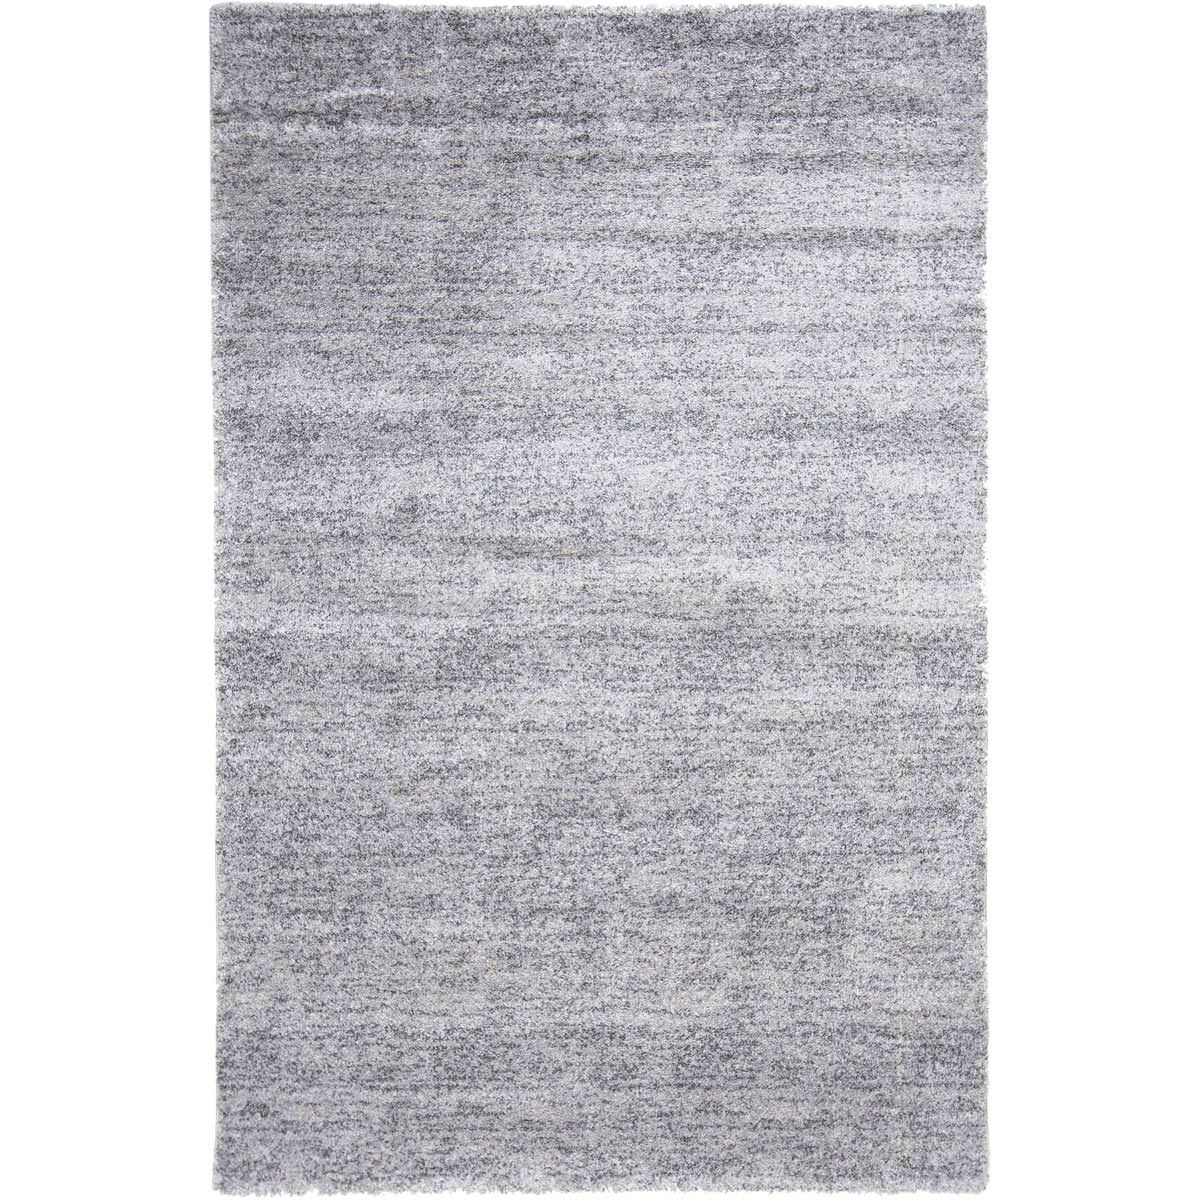 Monaco Rug 01 Light Grey 1